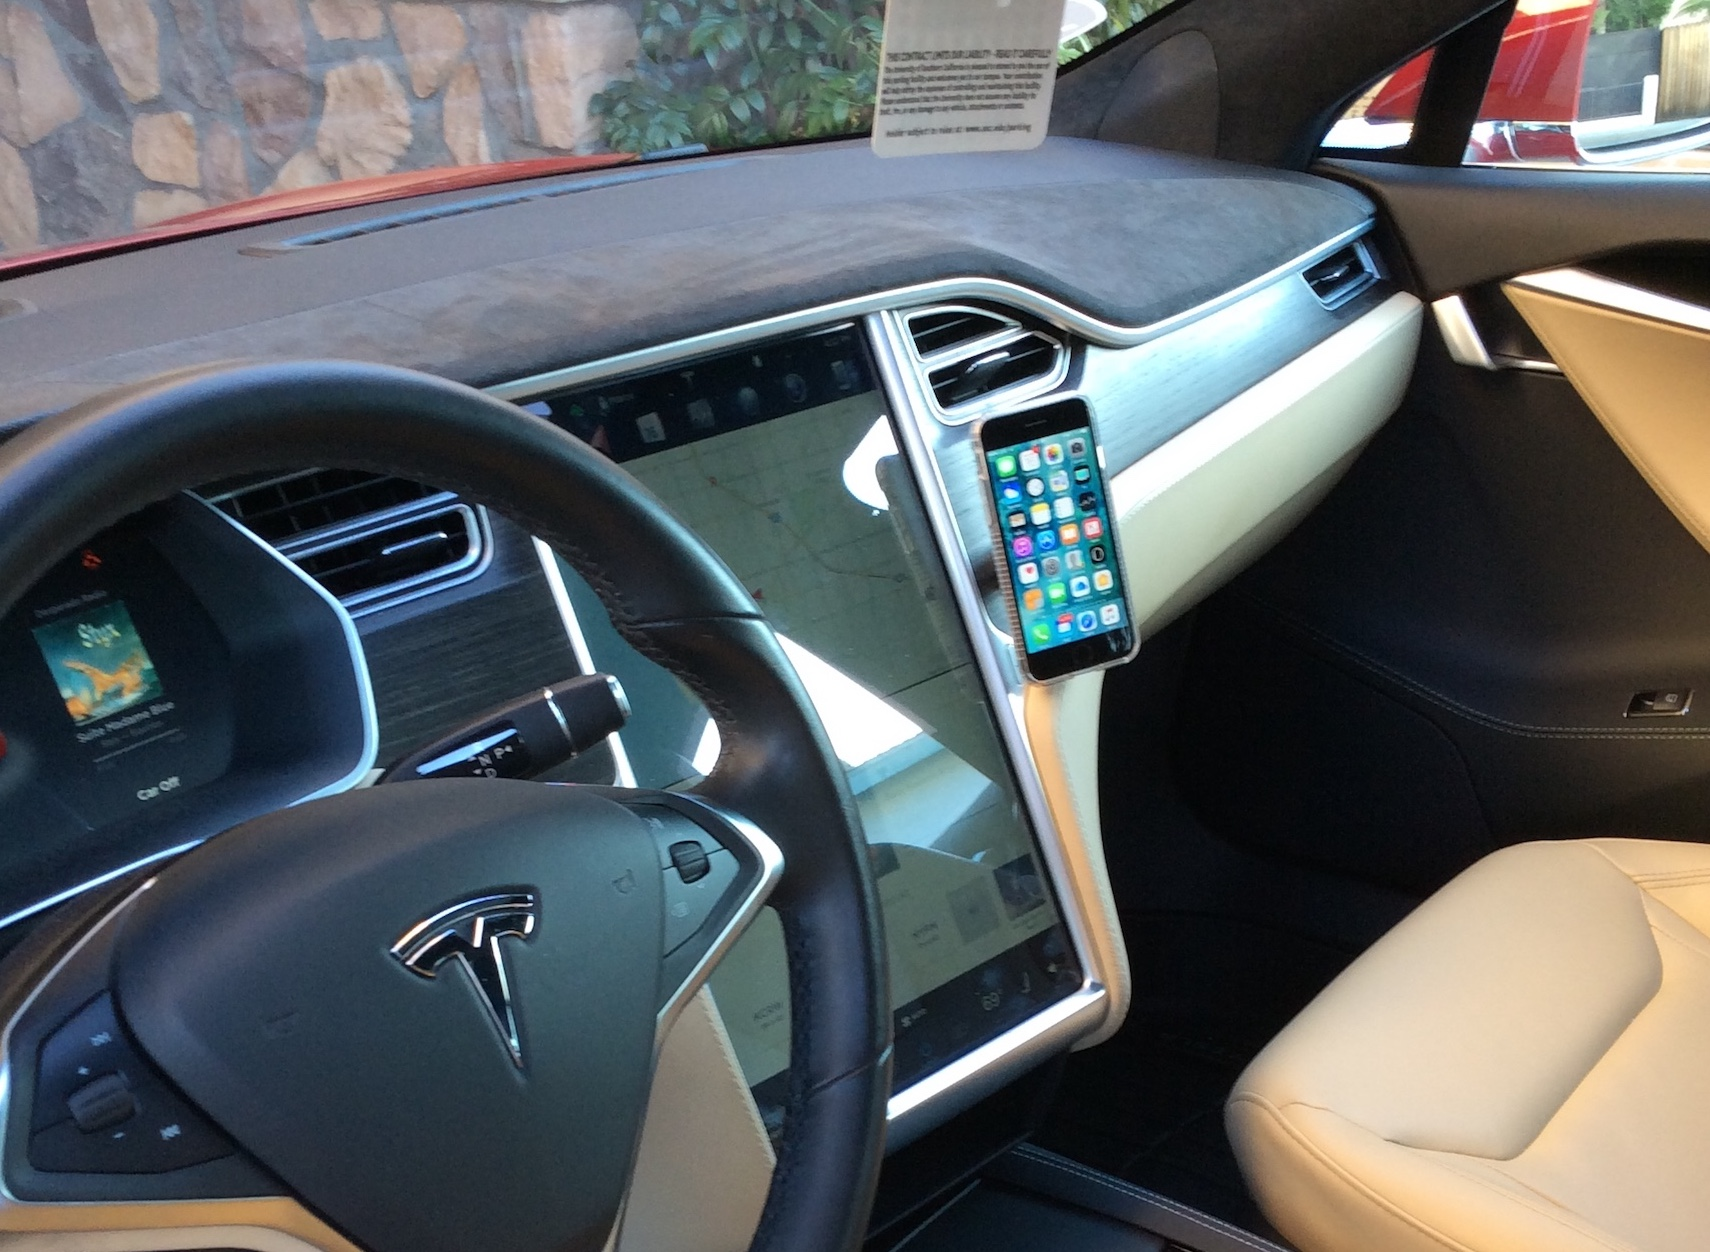 Installing a hands-free magnetic cell phone mount on a Tesla